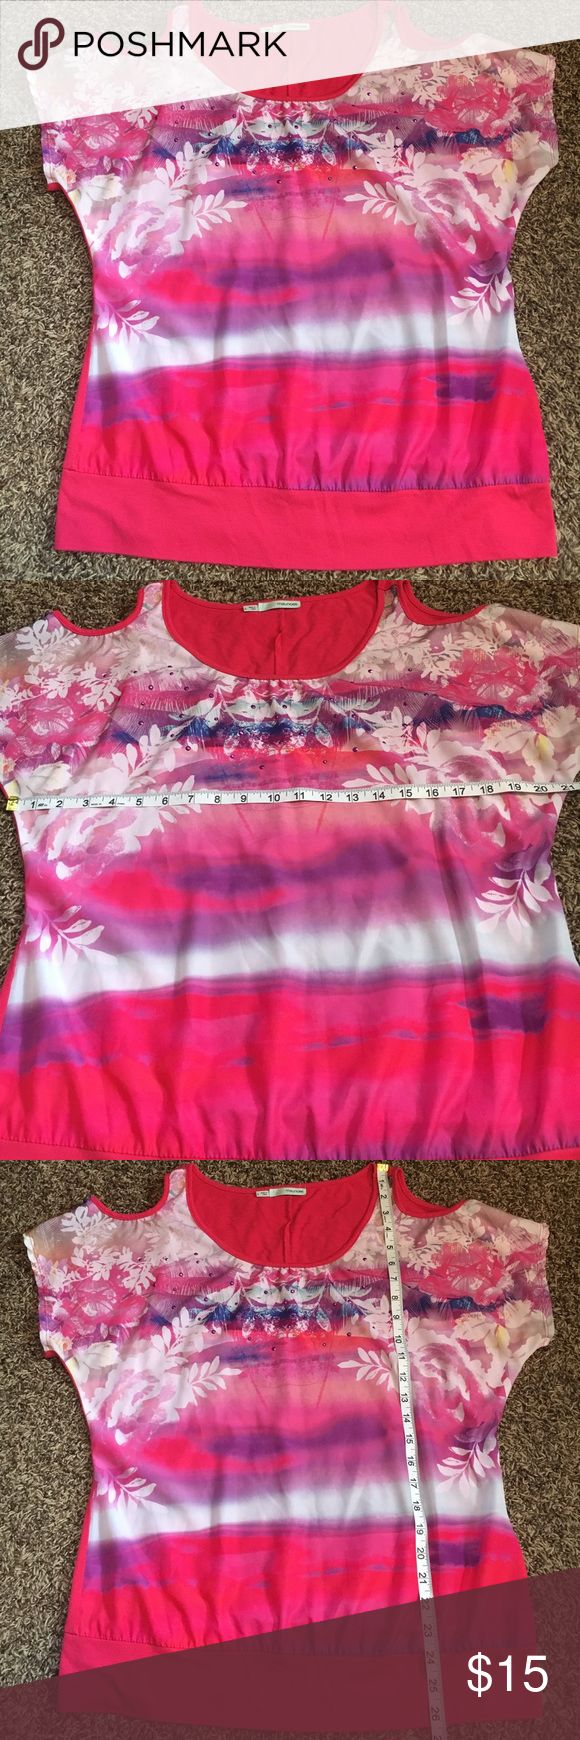 Maurice's open shoulder tee Gently worn, excellent condition, no flaws, smoke free. 🛍Open to reasonable offers ONLY please! I will not consider unreasonable offers that are half the asking price. No trades. No Modeling. And please keep in mind Poshmark sets the $6.49 flat rate shipping. Thank you!☺ Maurices Tops Tees - Short Sleeve